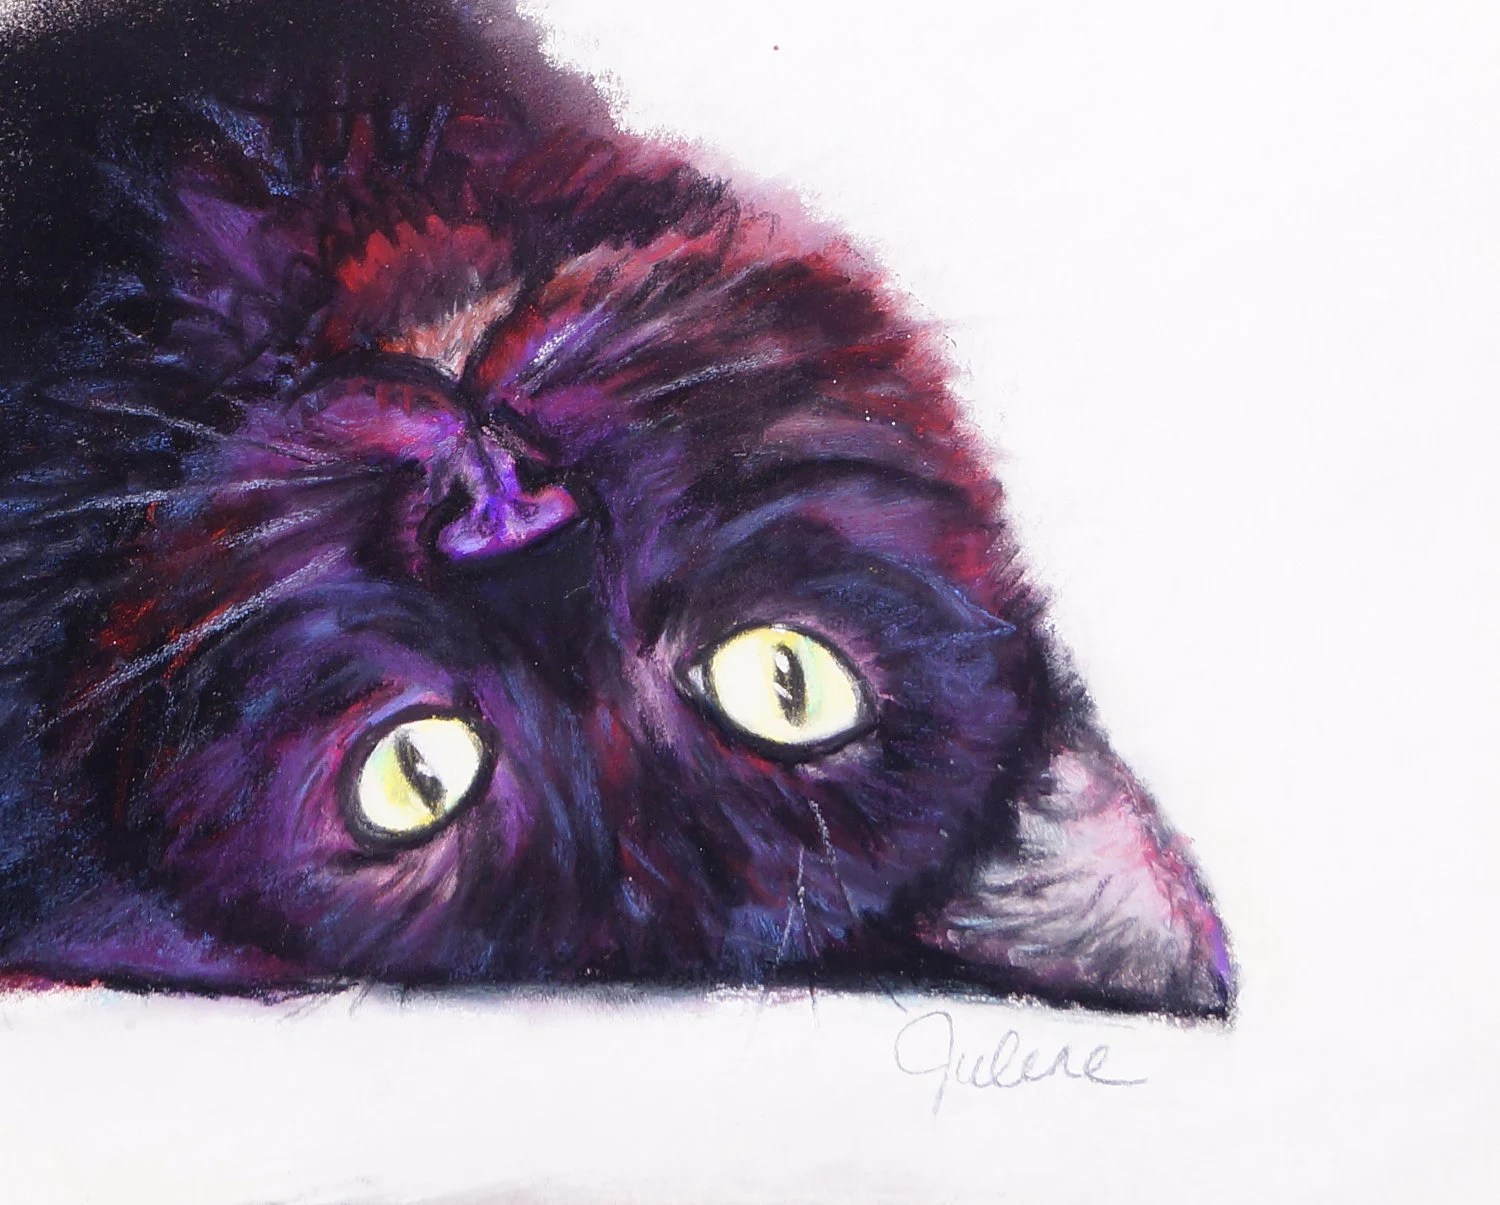 Black Kitty Rolling Over: Original Pastel Painting - ArtByJulene